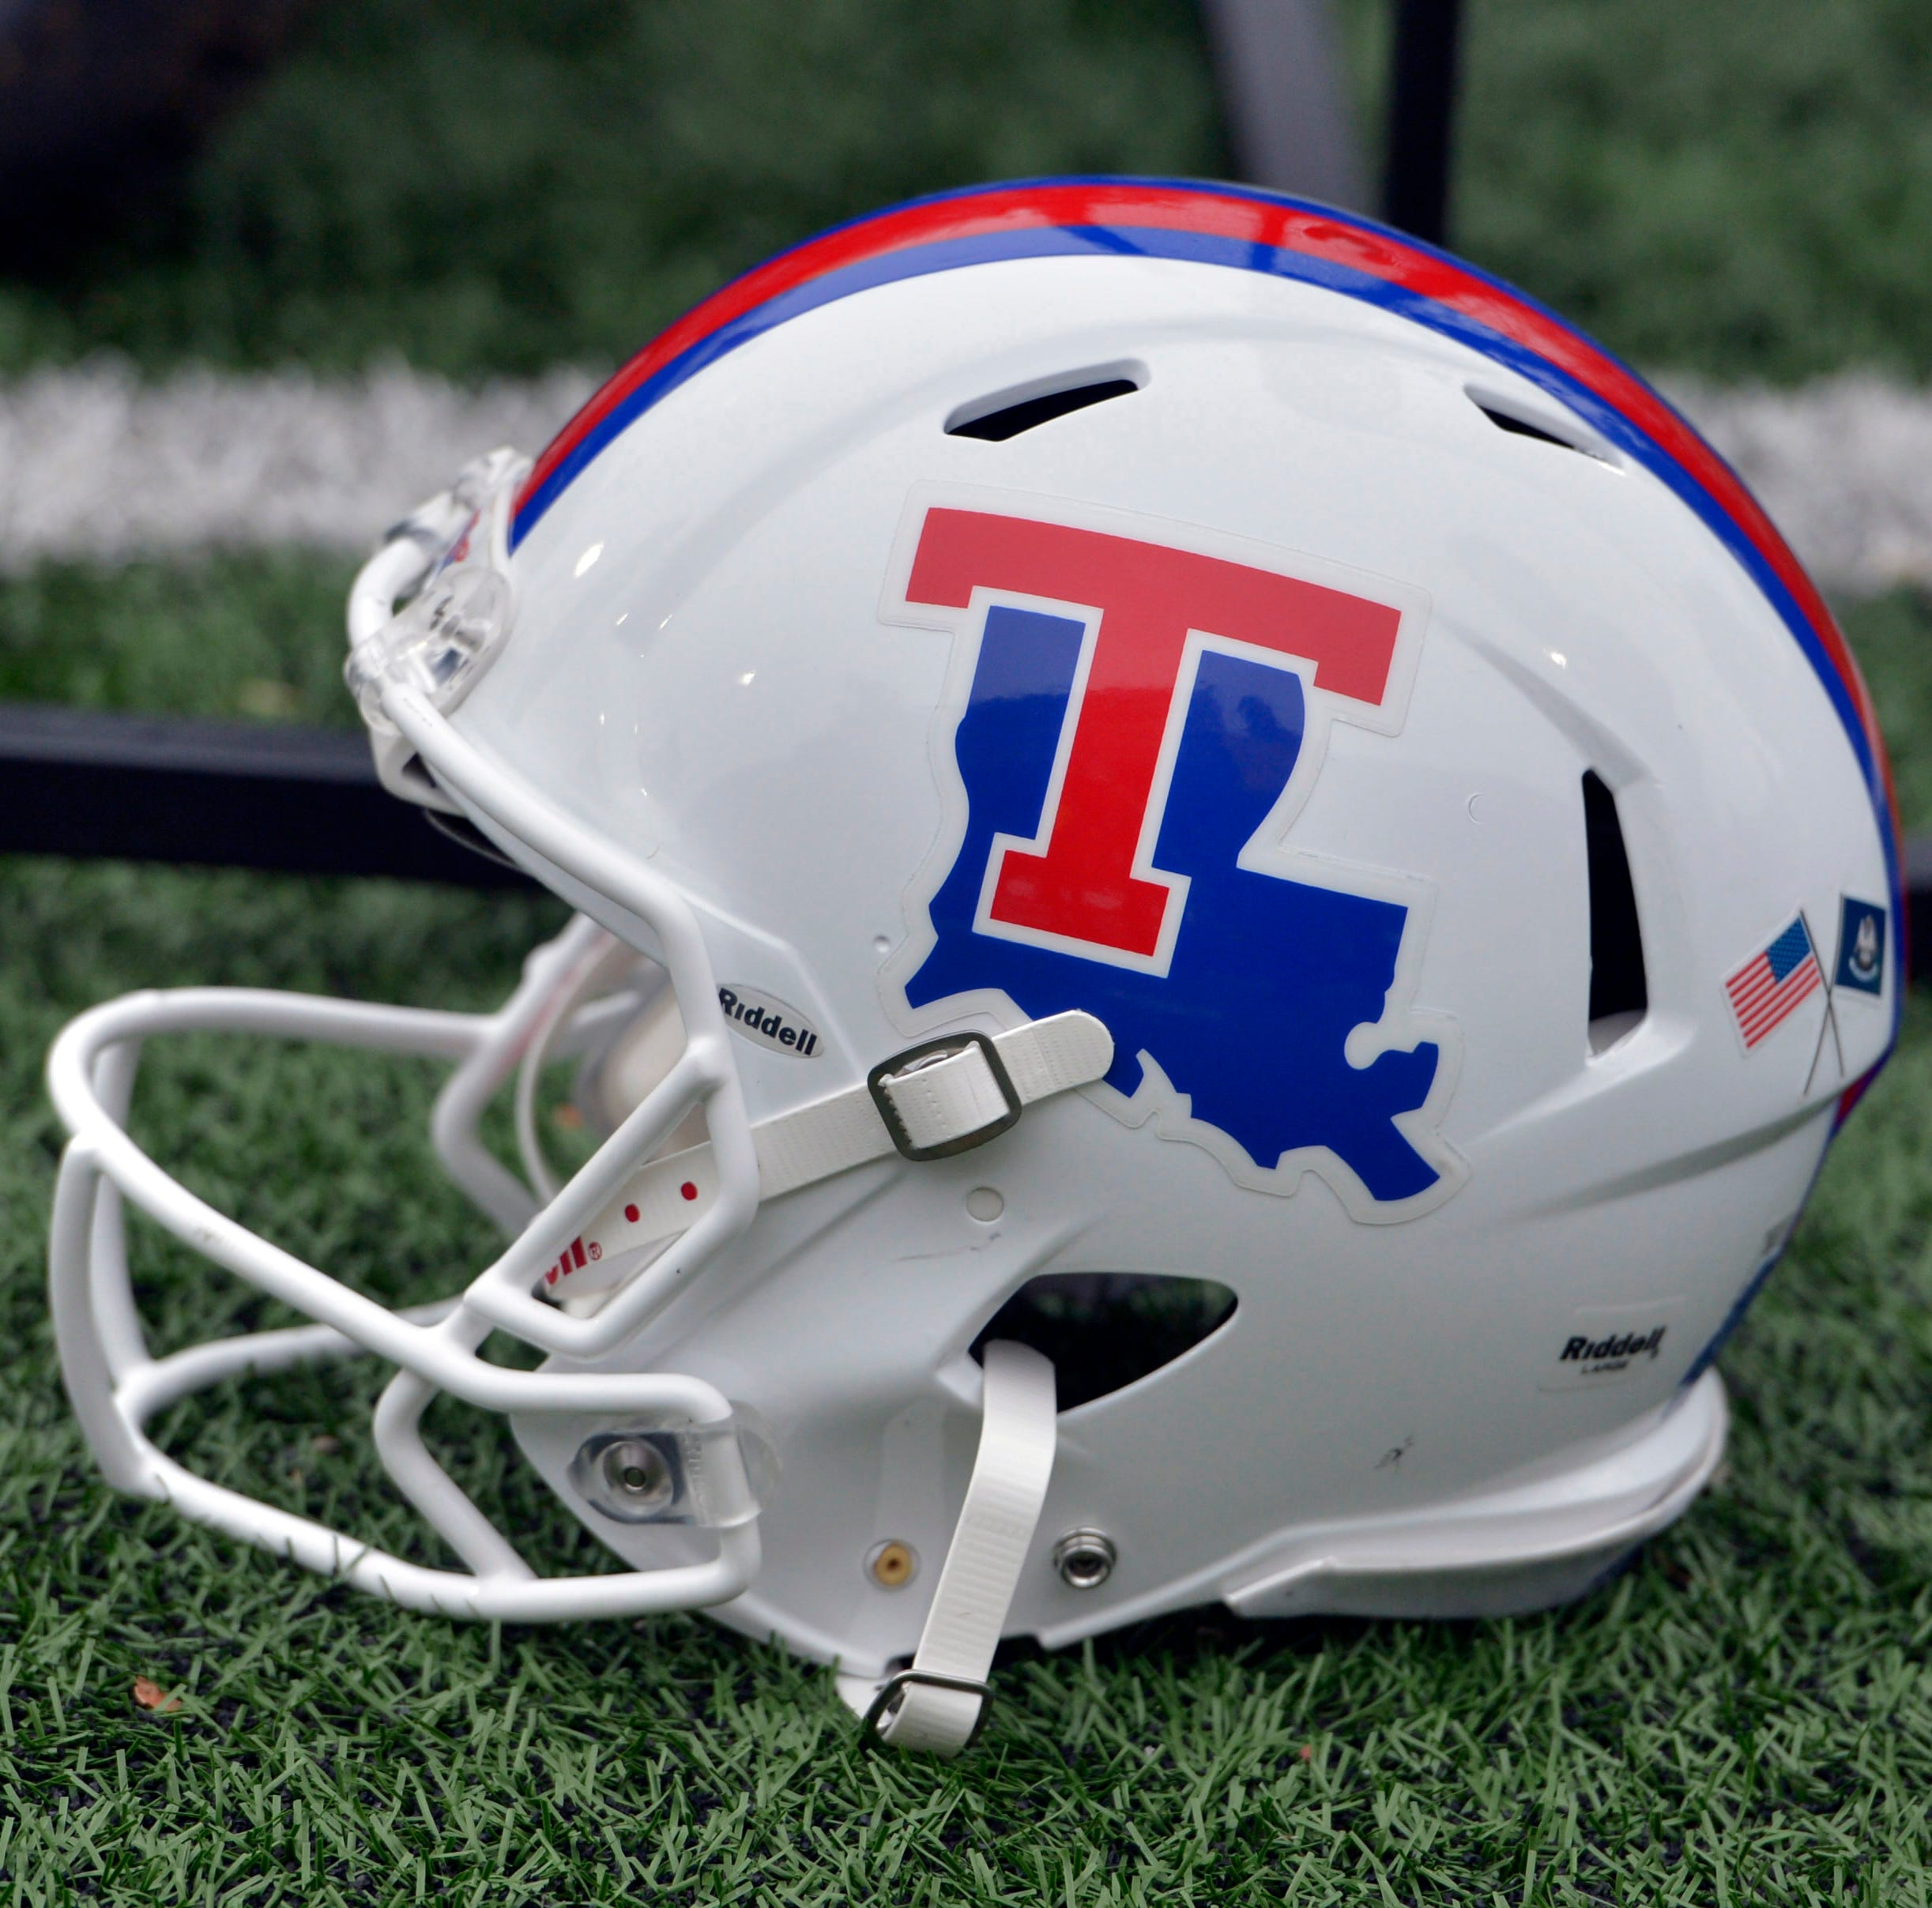 Reserve quarterback says he's transferring from Louisiana Tech